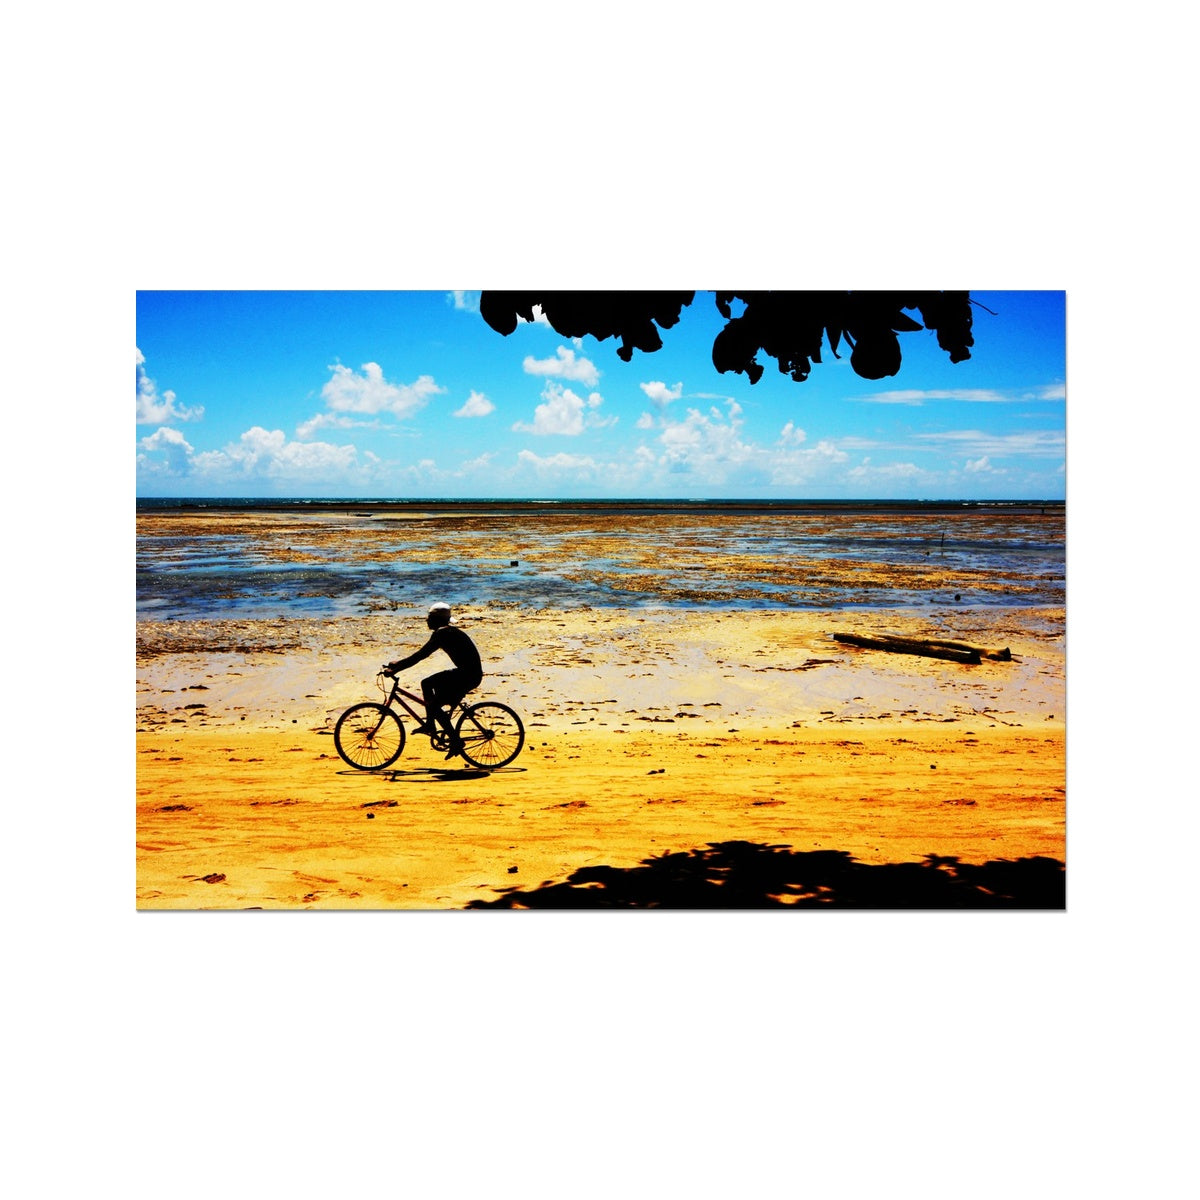 Bahia Bicyle Dreams - Brasil Photo Art Print